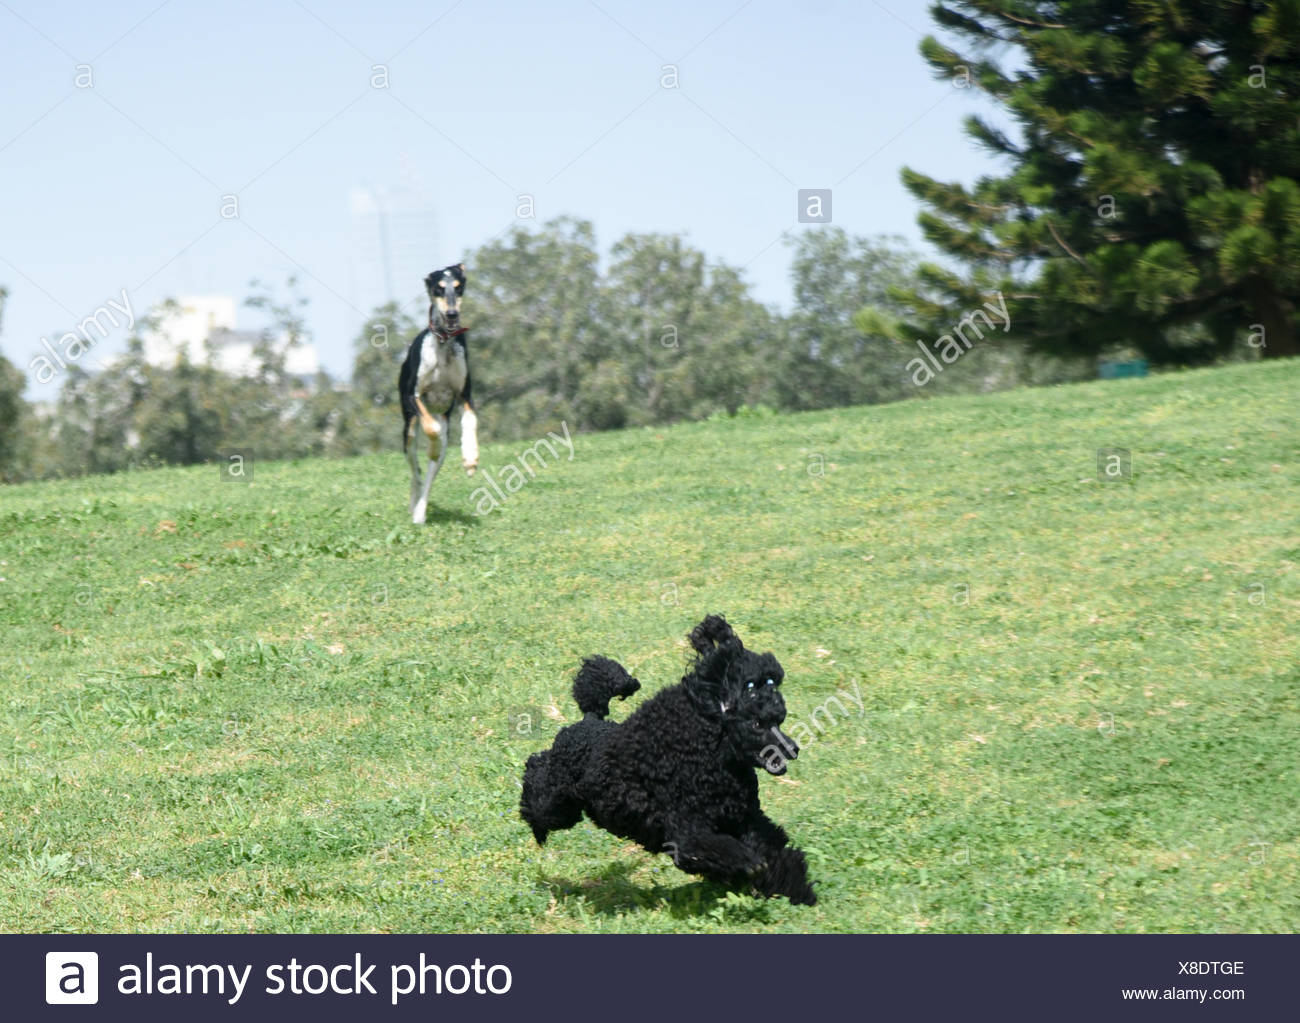 Playful Black Miniature Poodle and Saluki (Persian Greyhound) running and playing on the grass outside - Stock Image